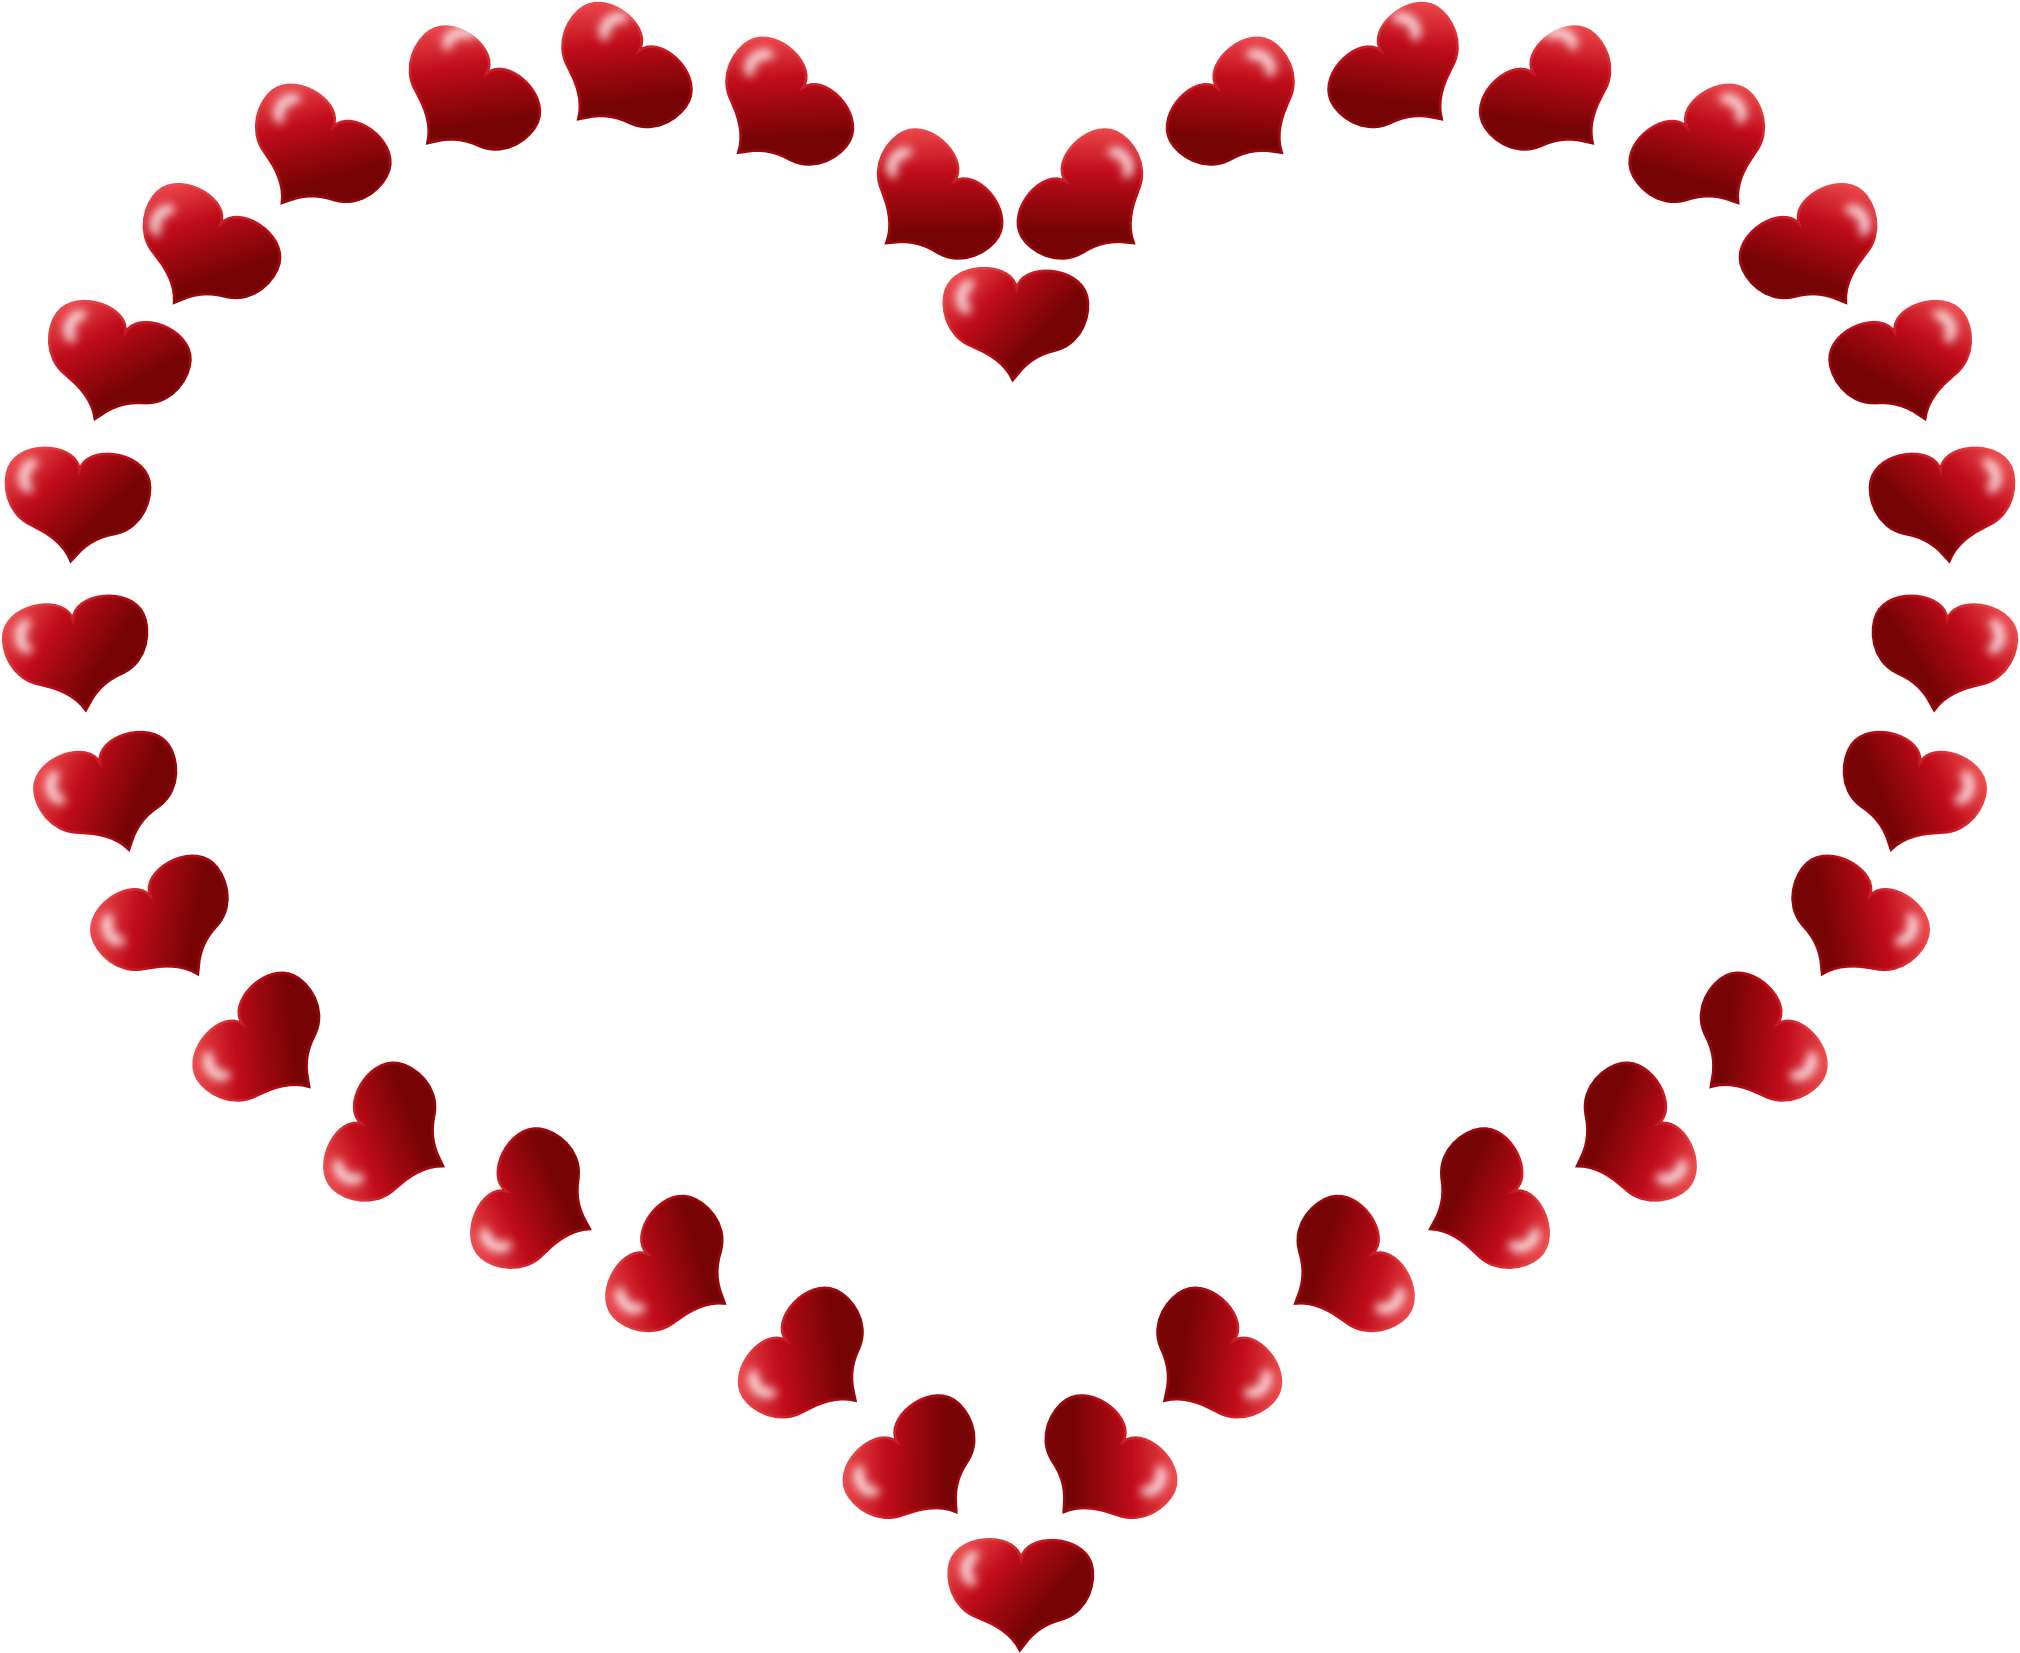 2020x1653 Heart Border Clip Art Free Clipart Images 2